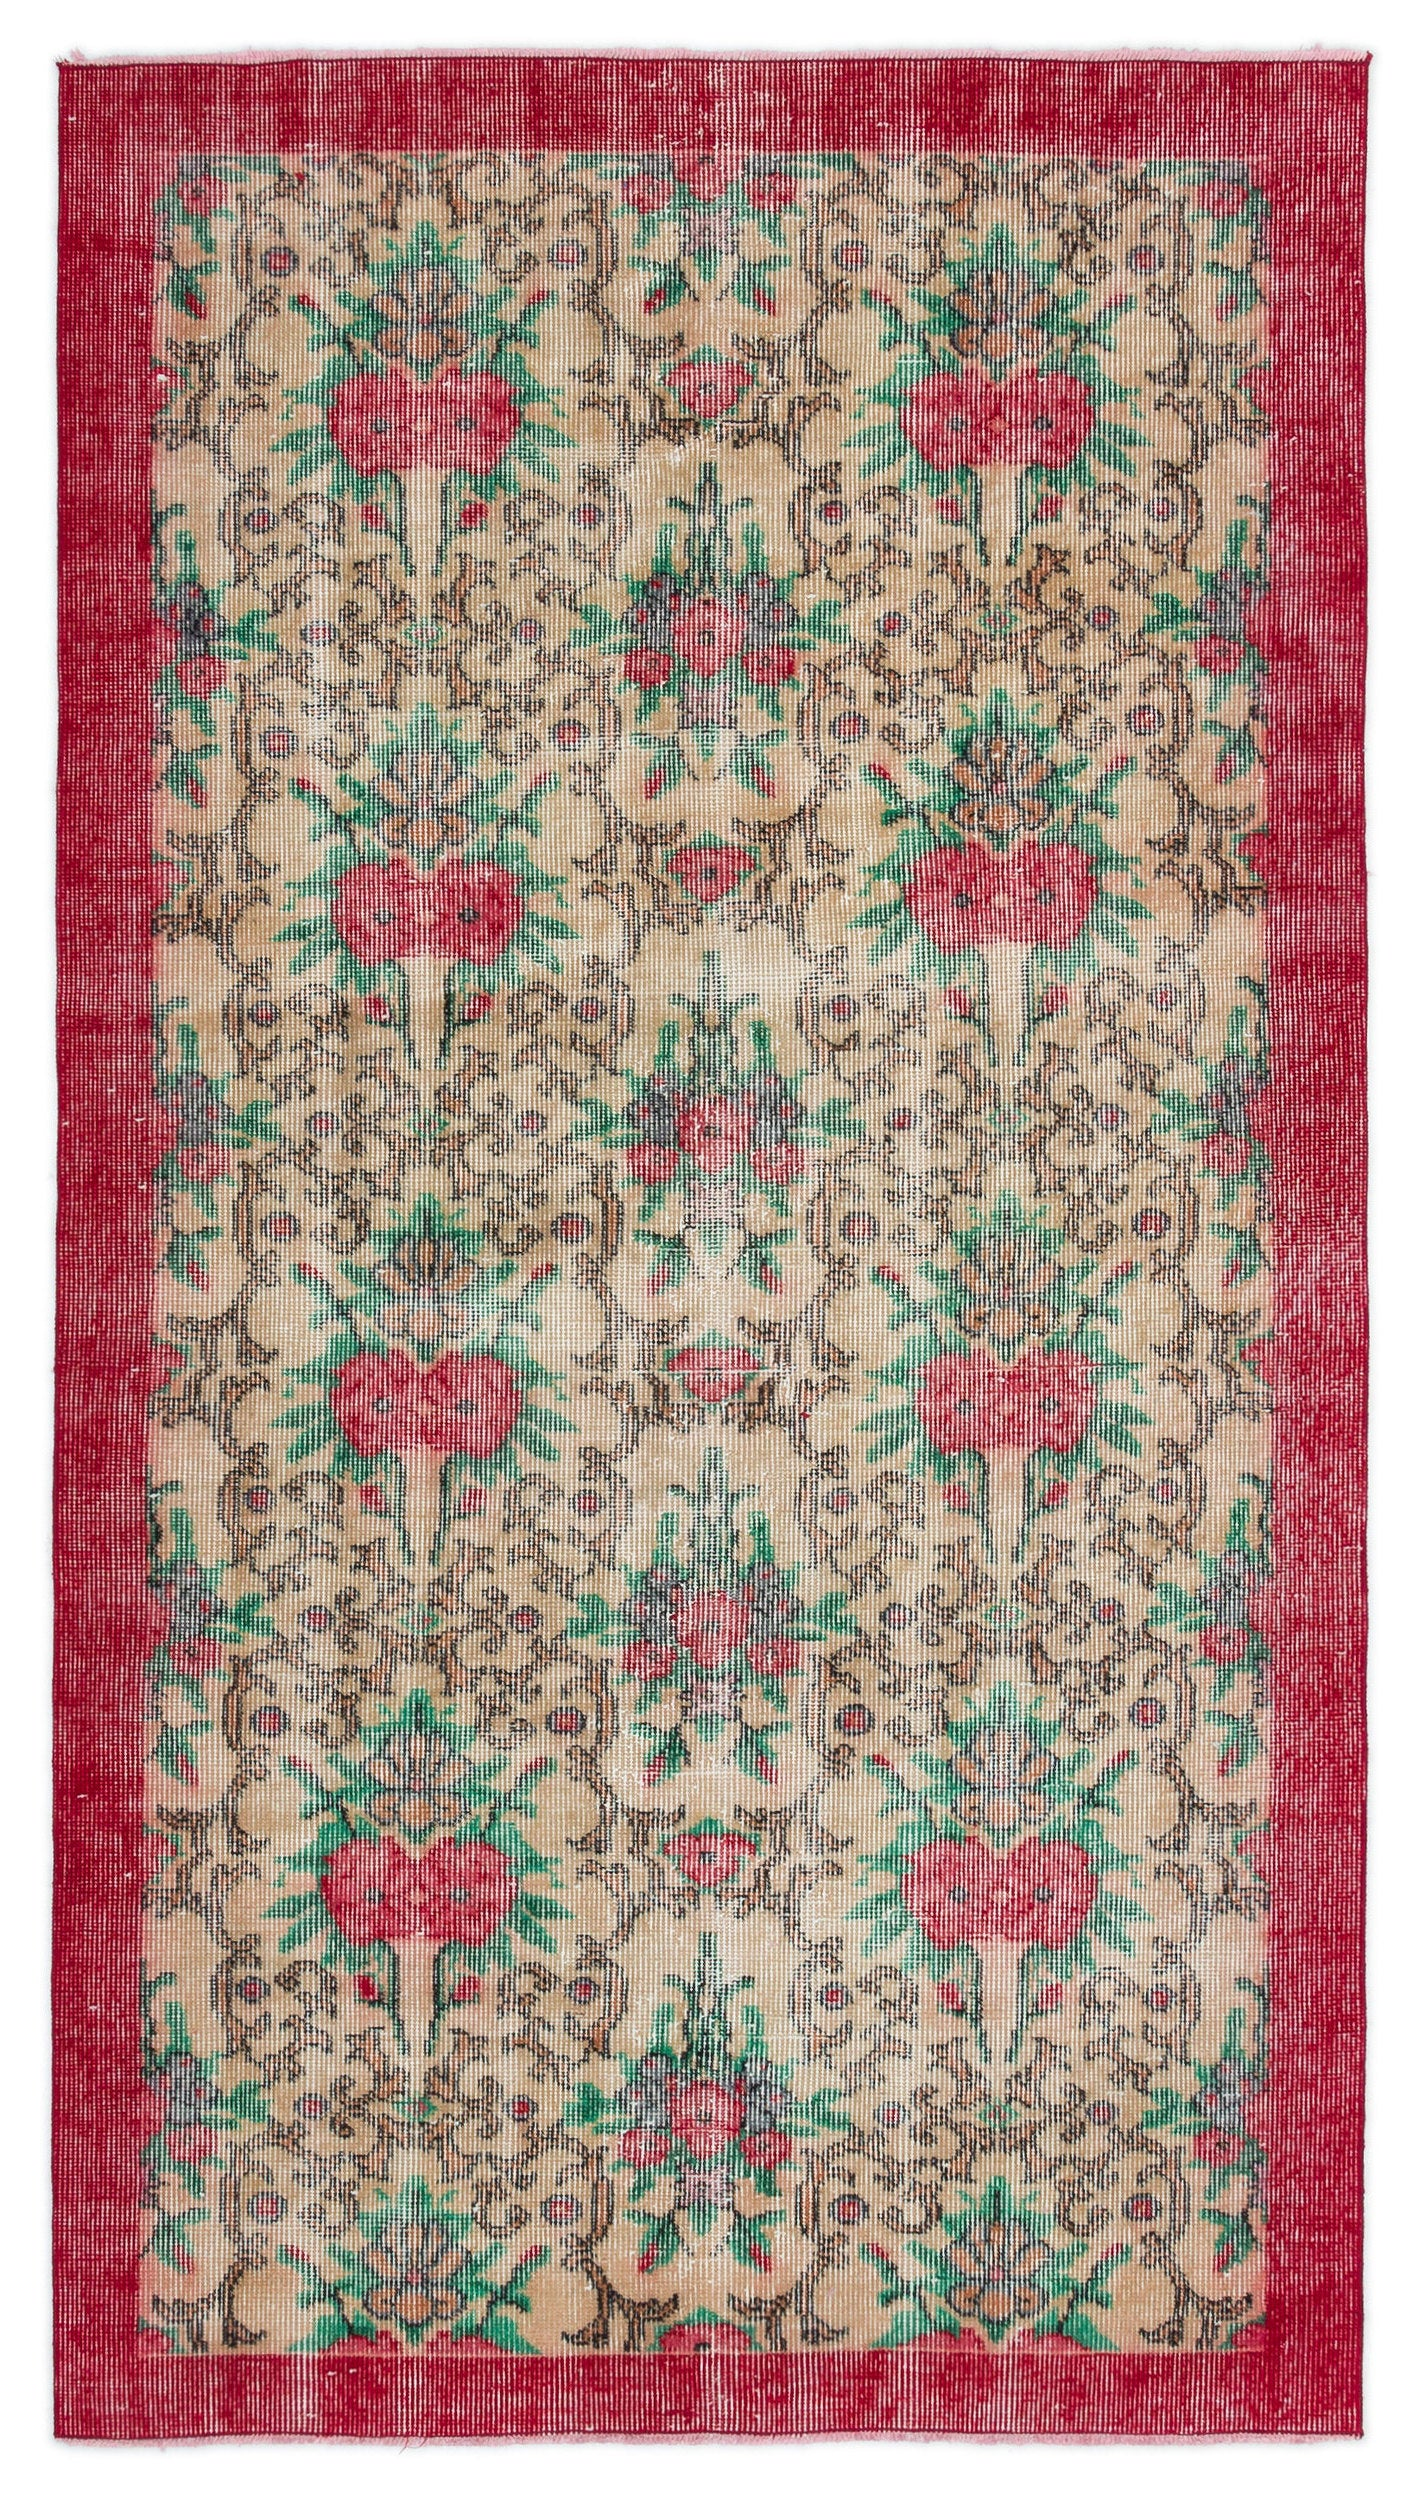 Retro Over Dyed Vintage Rug 3'8'' x 6'7'' ft 112 x 200 cm